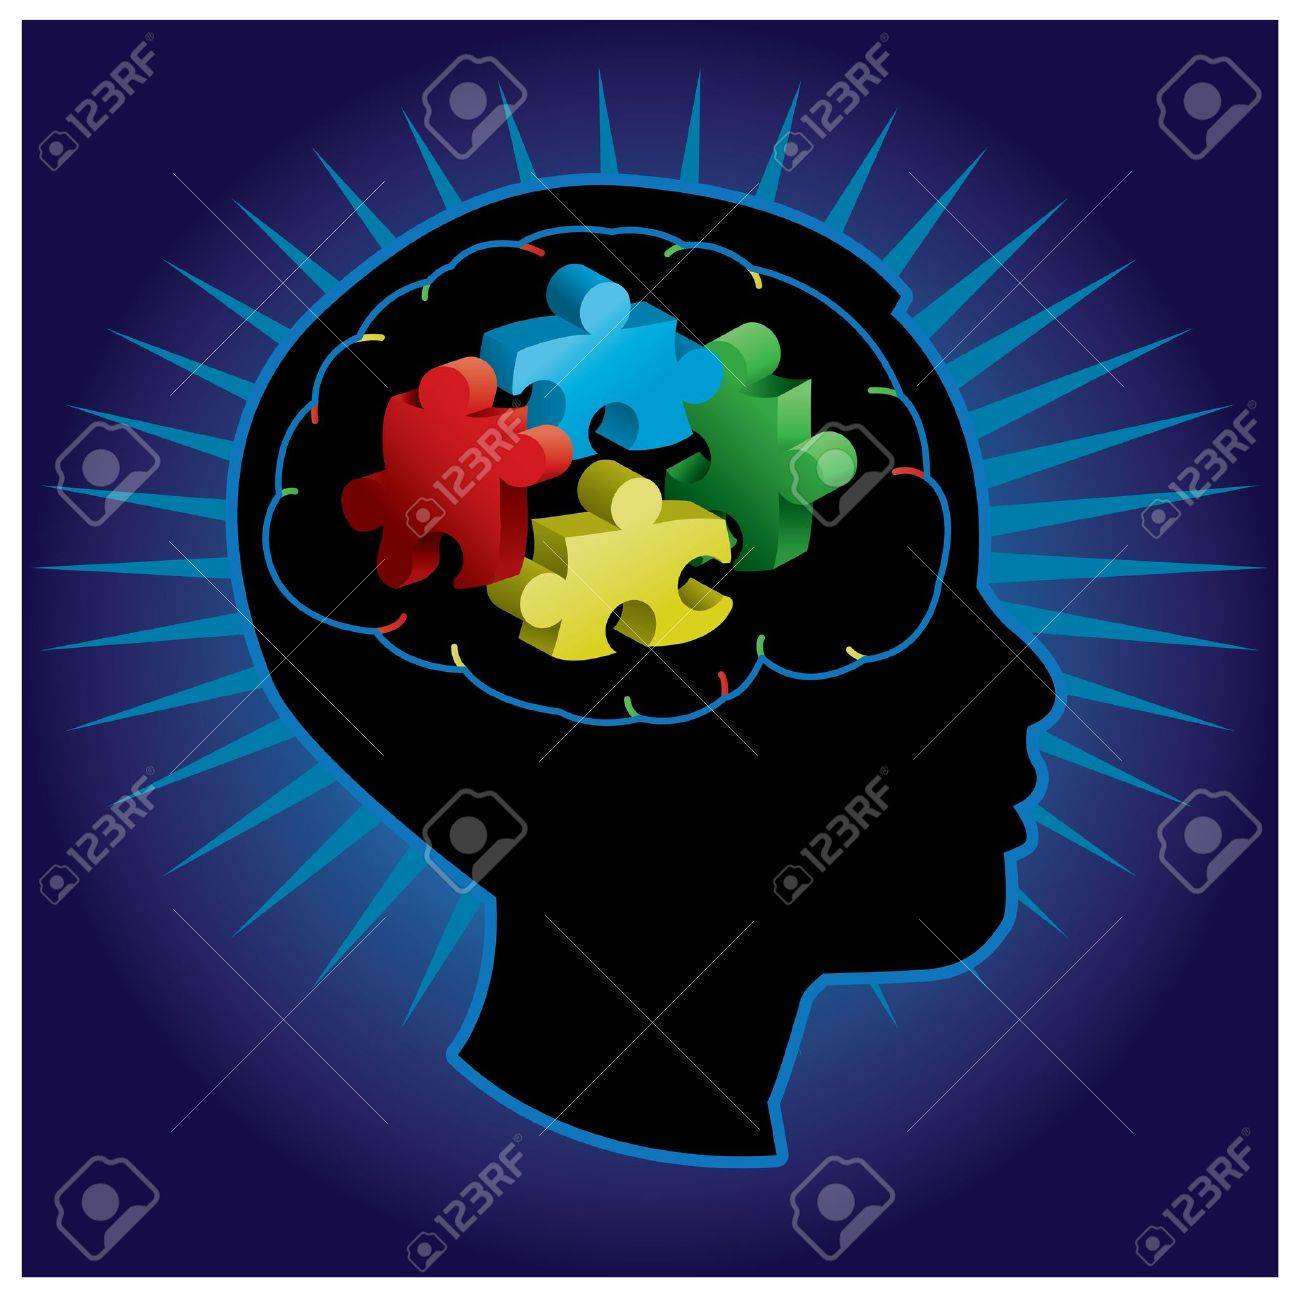 Black silhouette of profiled child with symbolic autism puzzle pieces Stock Vector - 17871805